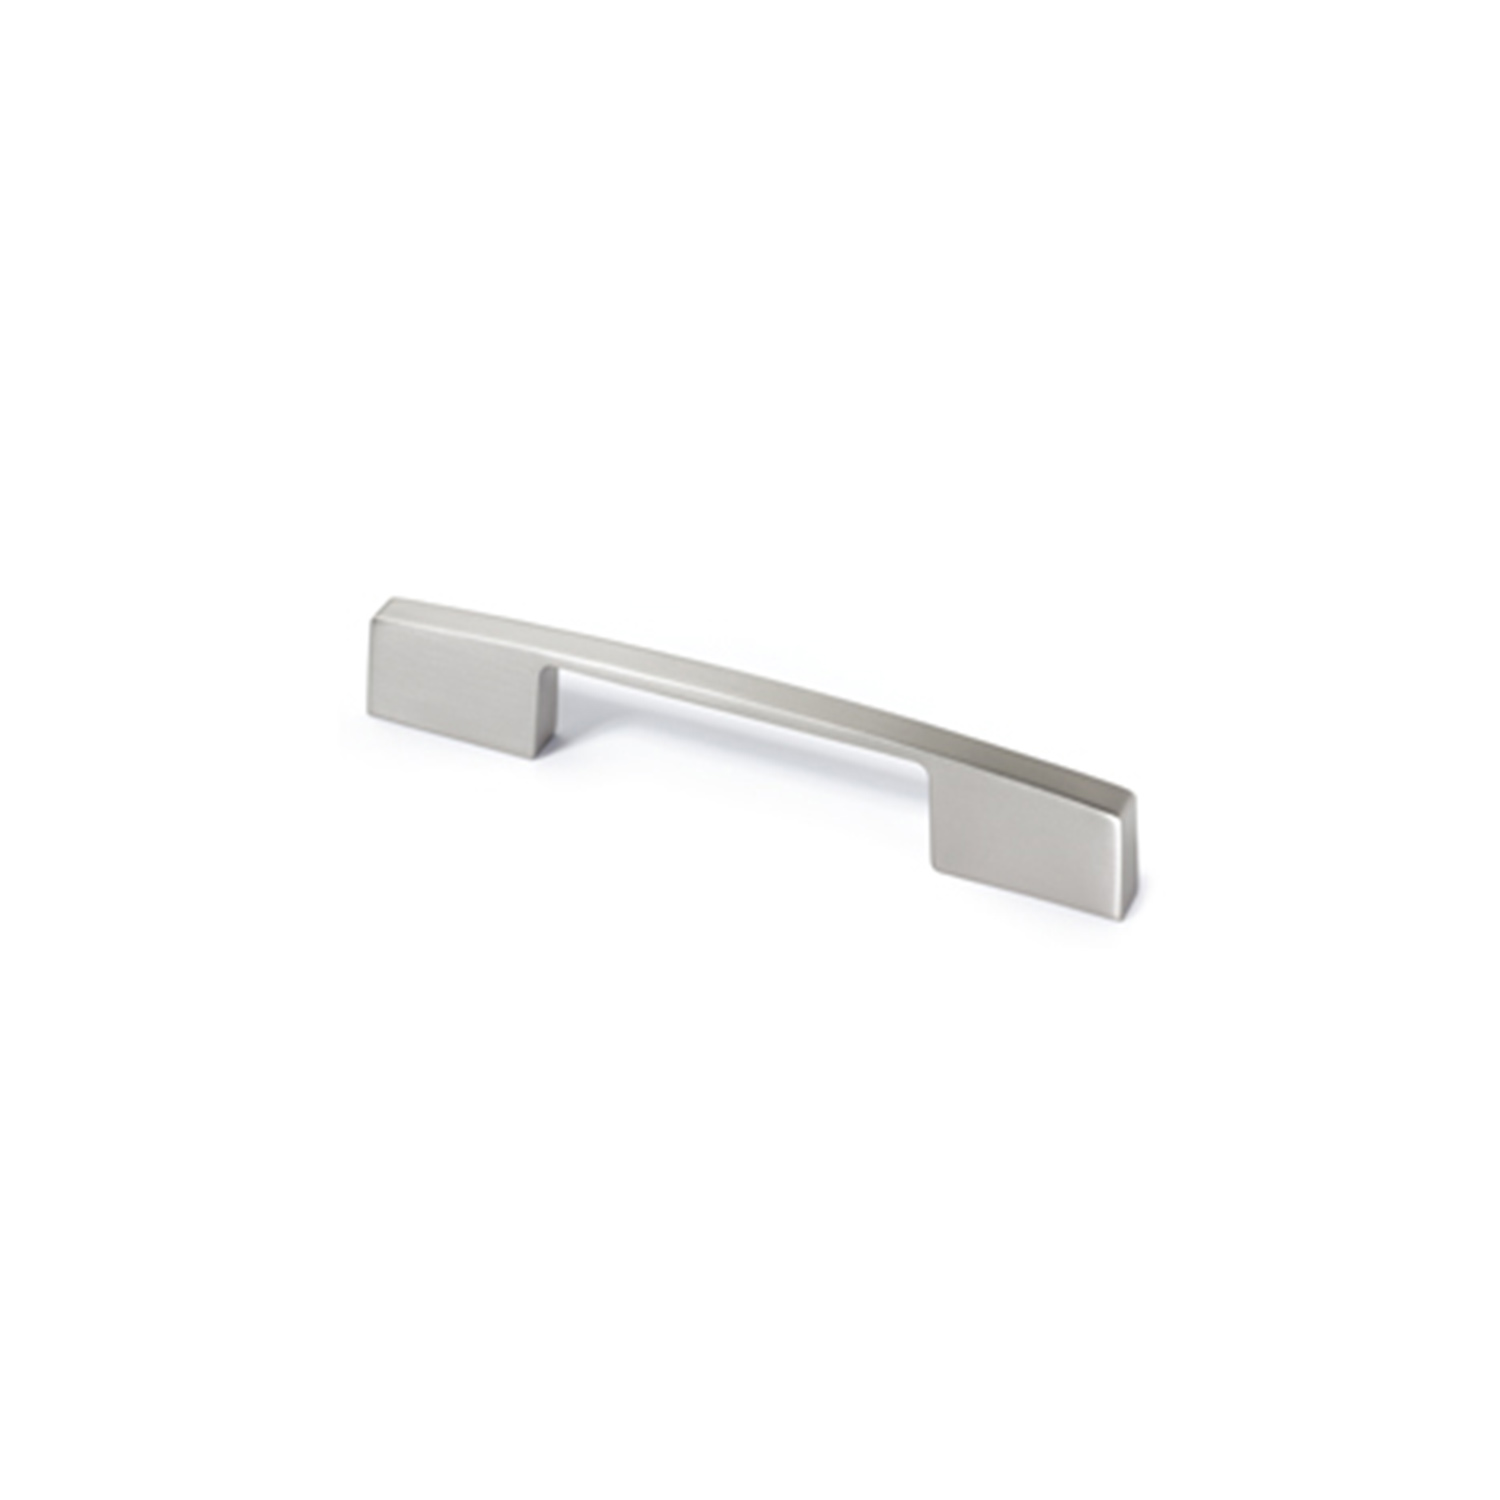 Alpha Evisa Zinc Bright Chrome Finish Handle